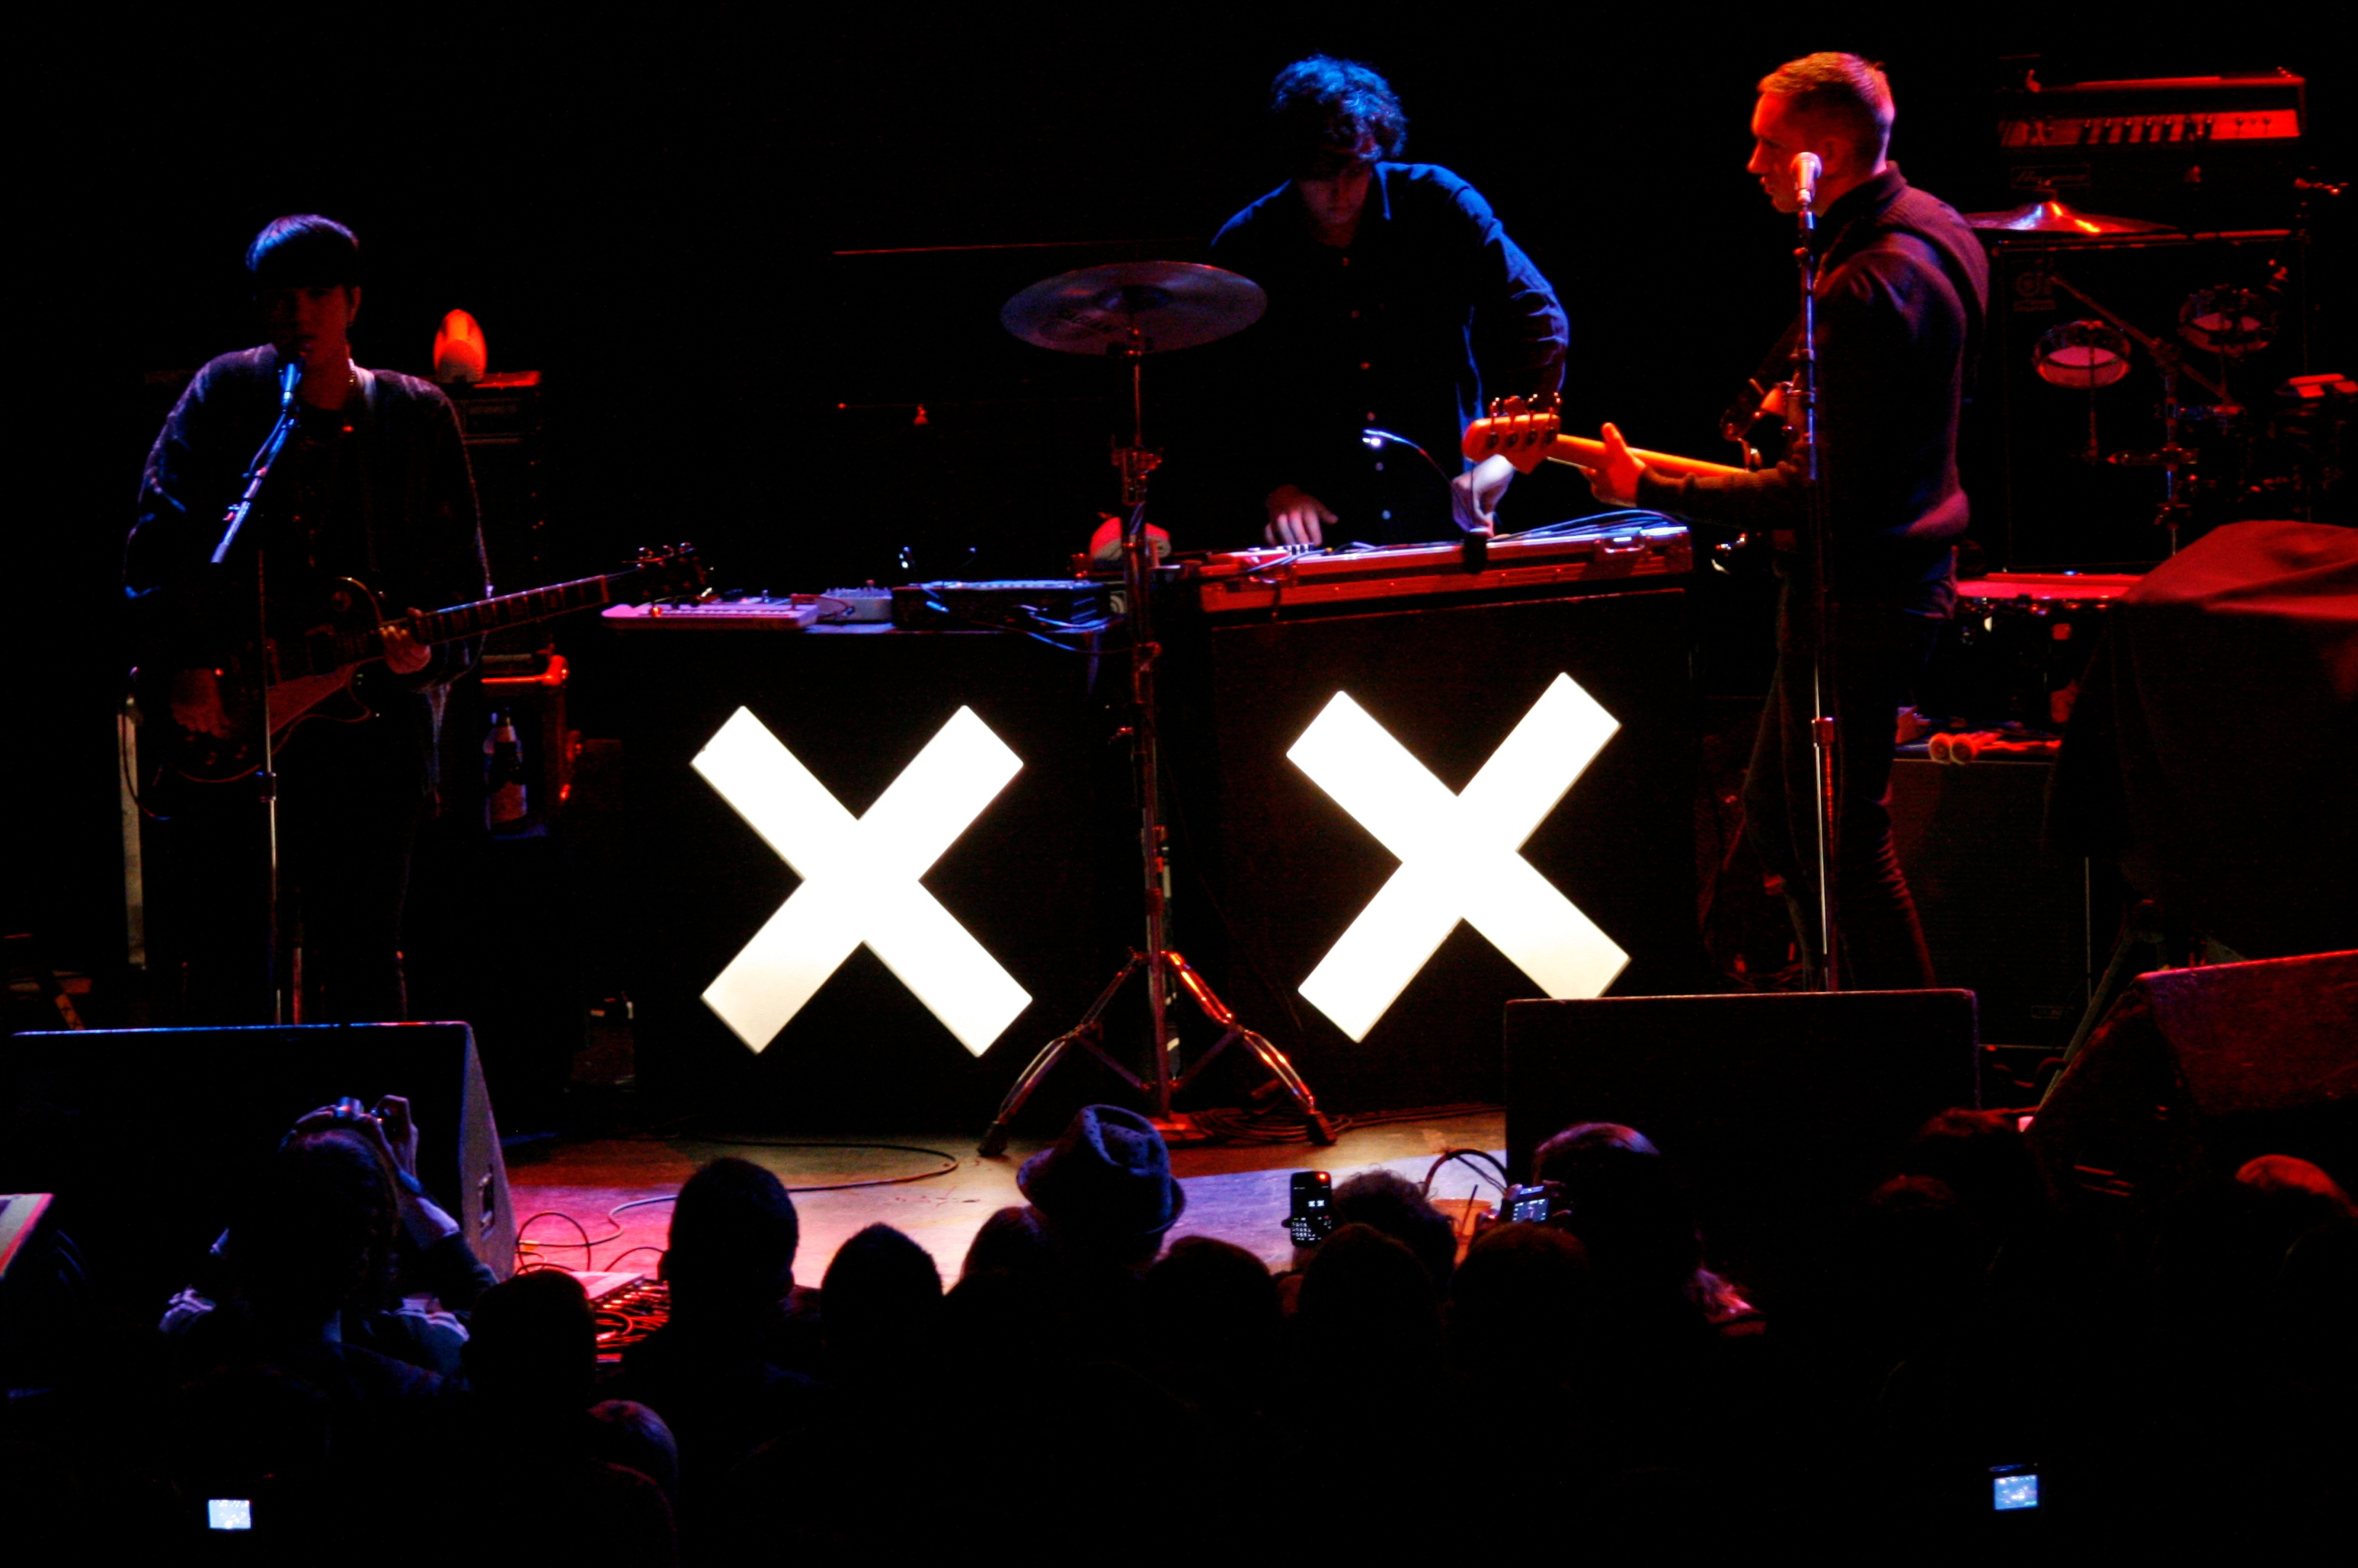 The xx band